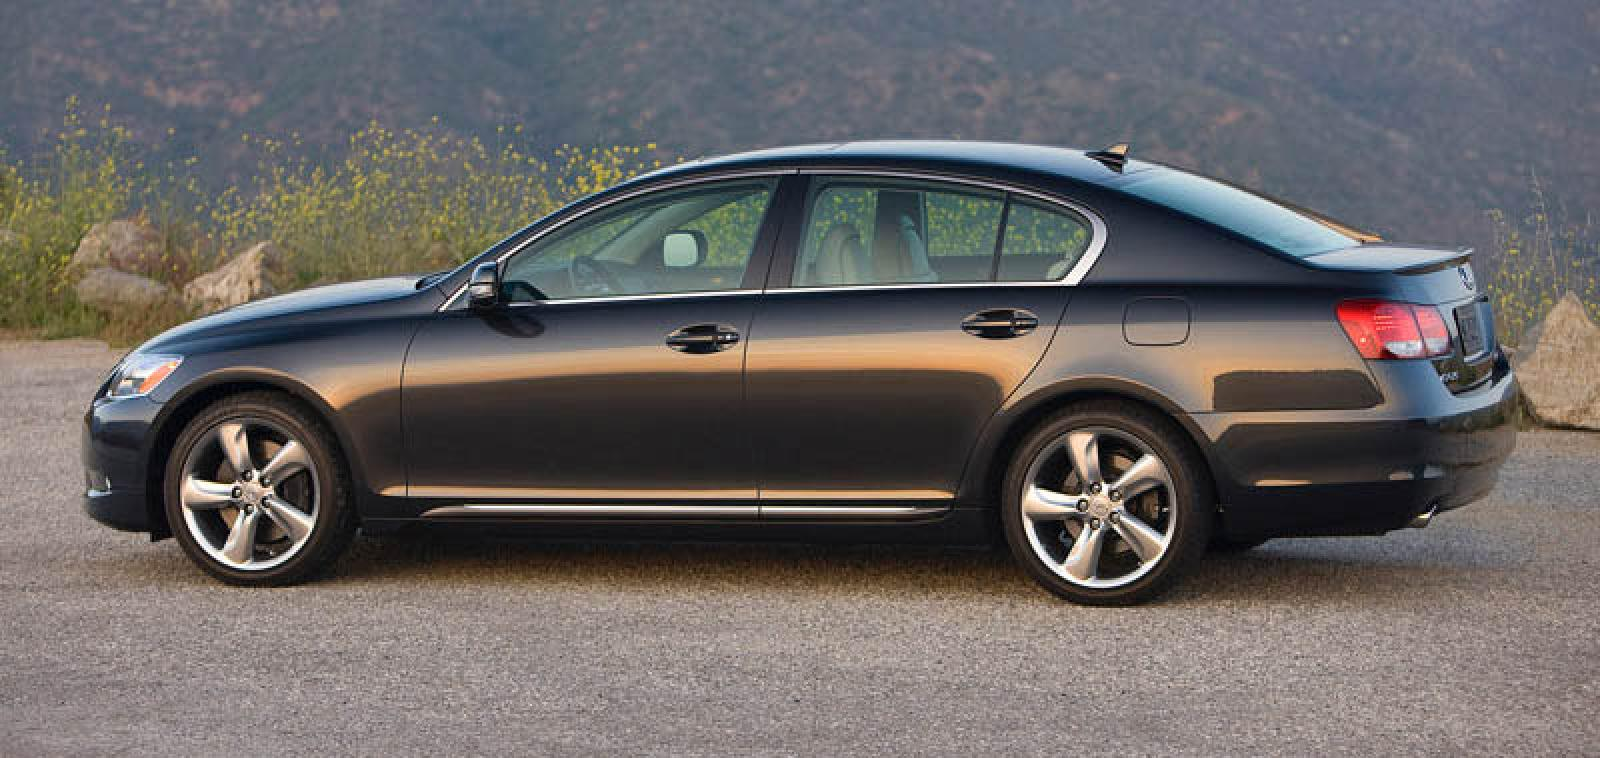 2010 lexus gs 460 information and photos zombiedrive. Black Bedroom Furniture Sets. Home Design Ideas